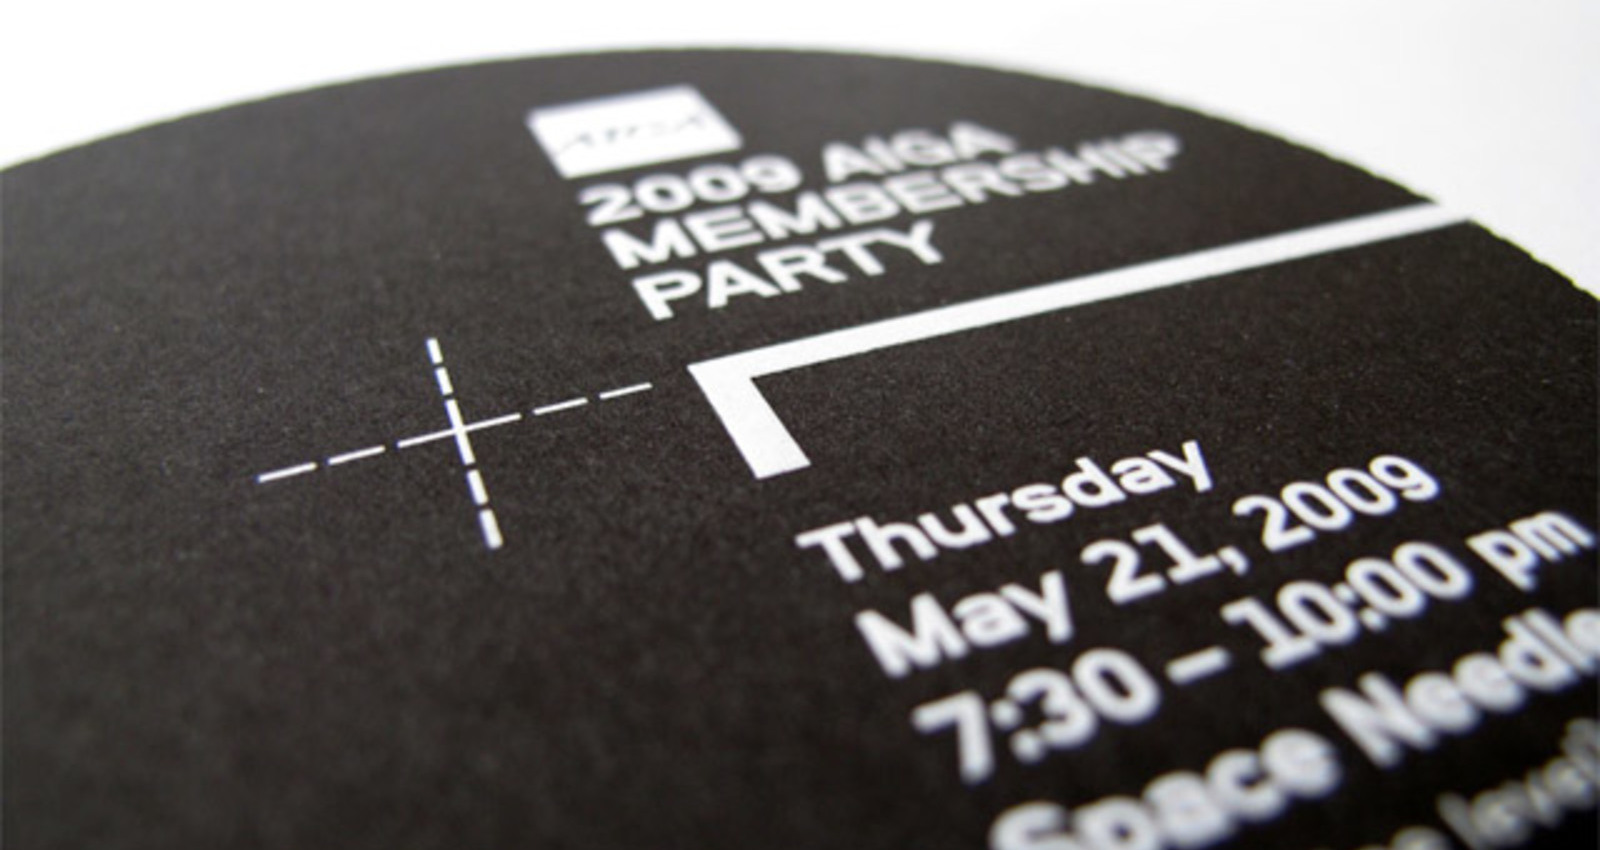 2009 Membership Party Invitation